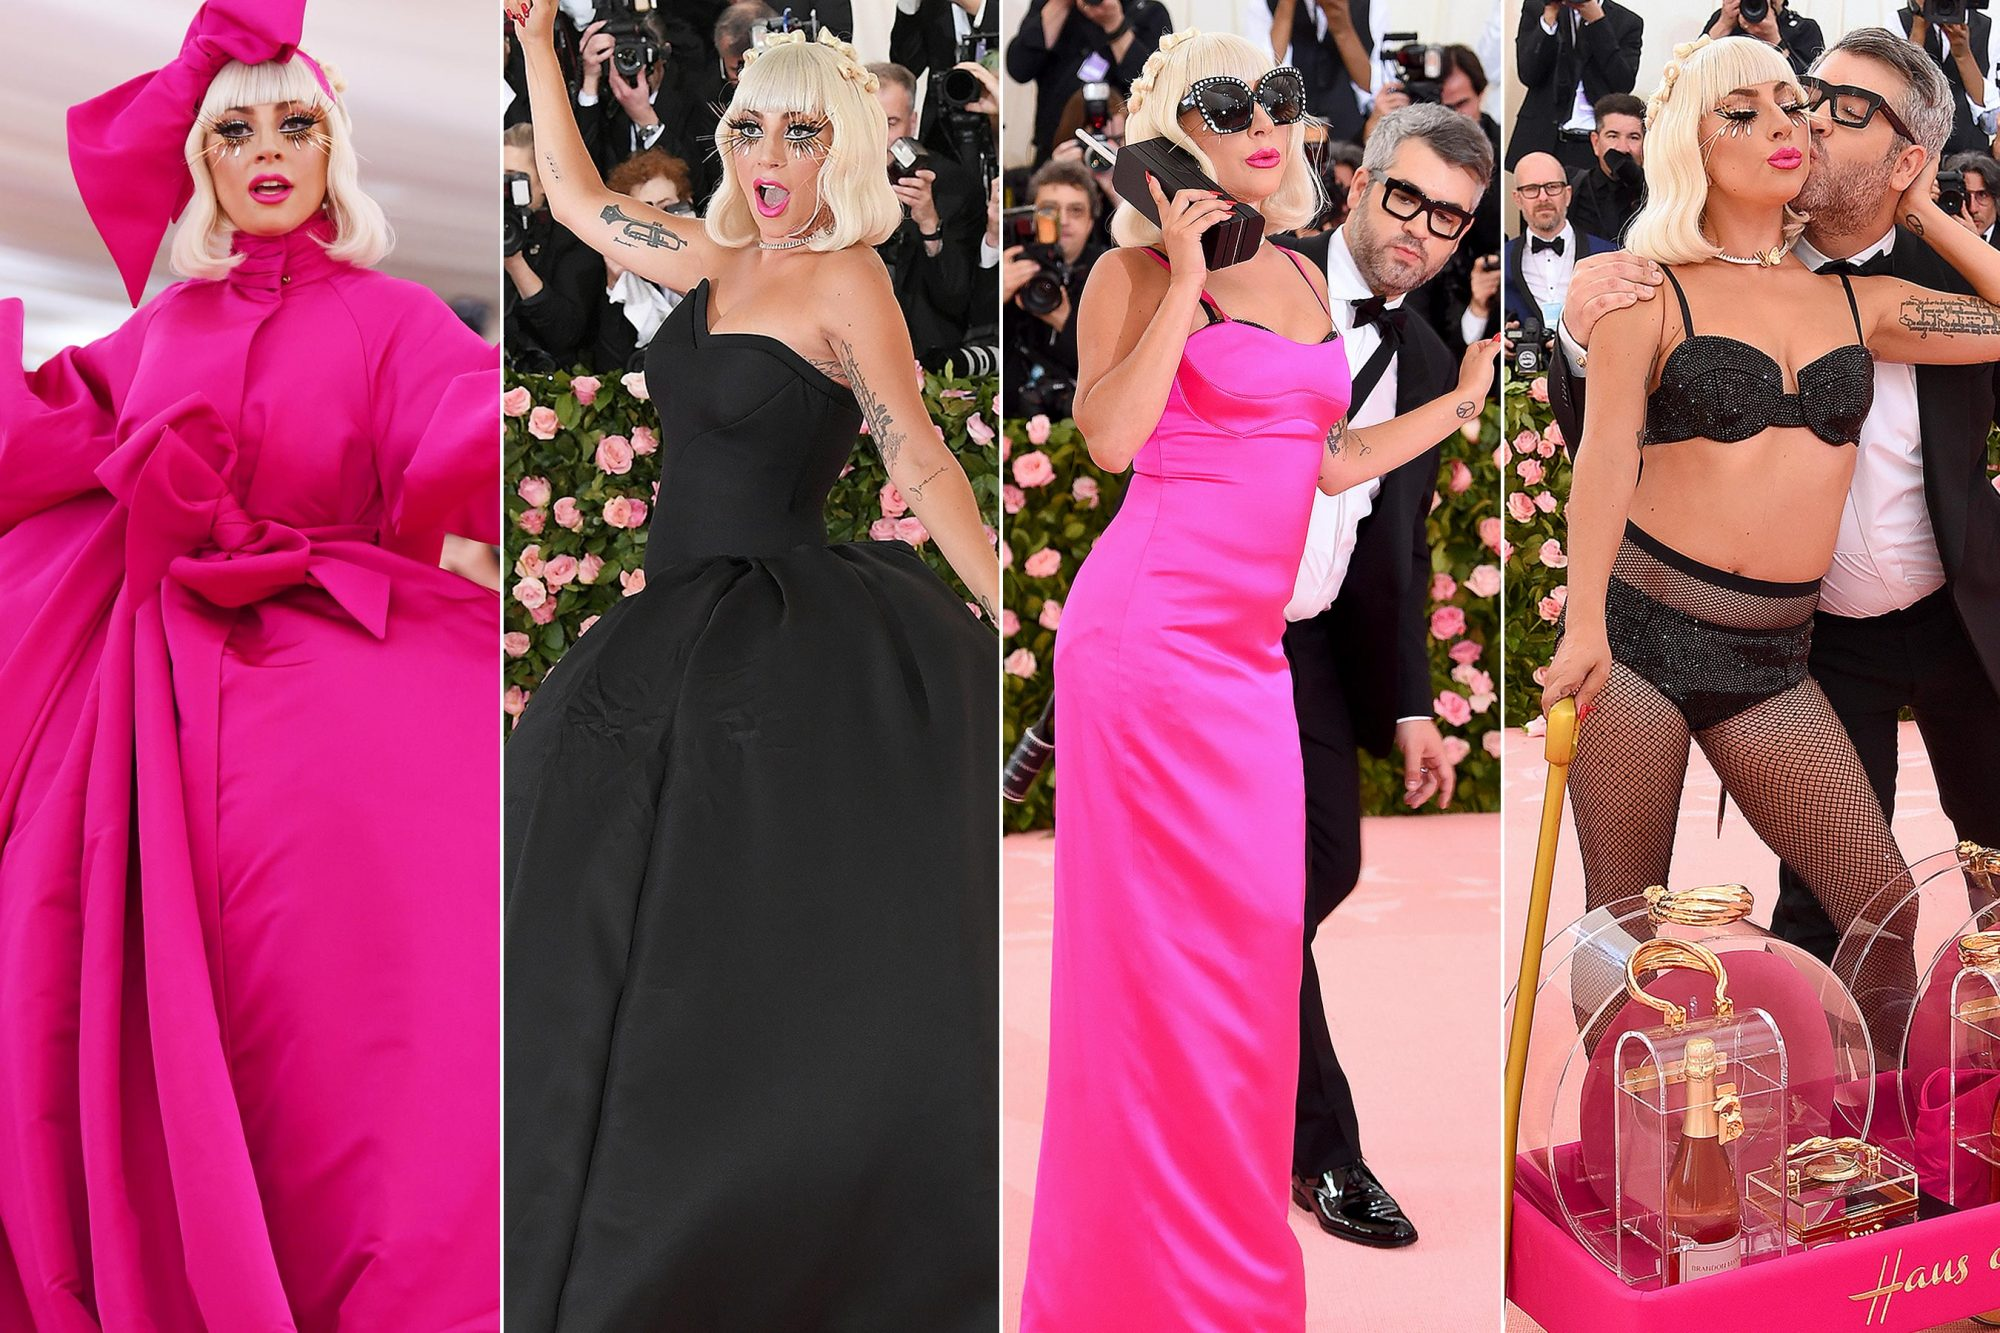 NEW YORK, NEW YORK - MAY 06: Lady Gaga attends The 2019 Met Gala Celebrating Camp: Notes on Fashion at Metropolitan Museum of Art on May 06, 2019 in New York City. (4) Credit L-R: Dimitrios Kambouris/Getty Images; Neilson Barnard/Getty Images; Jamie McCarthy/Getty Images (2)